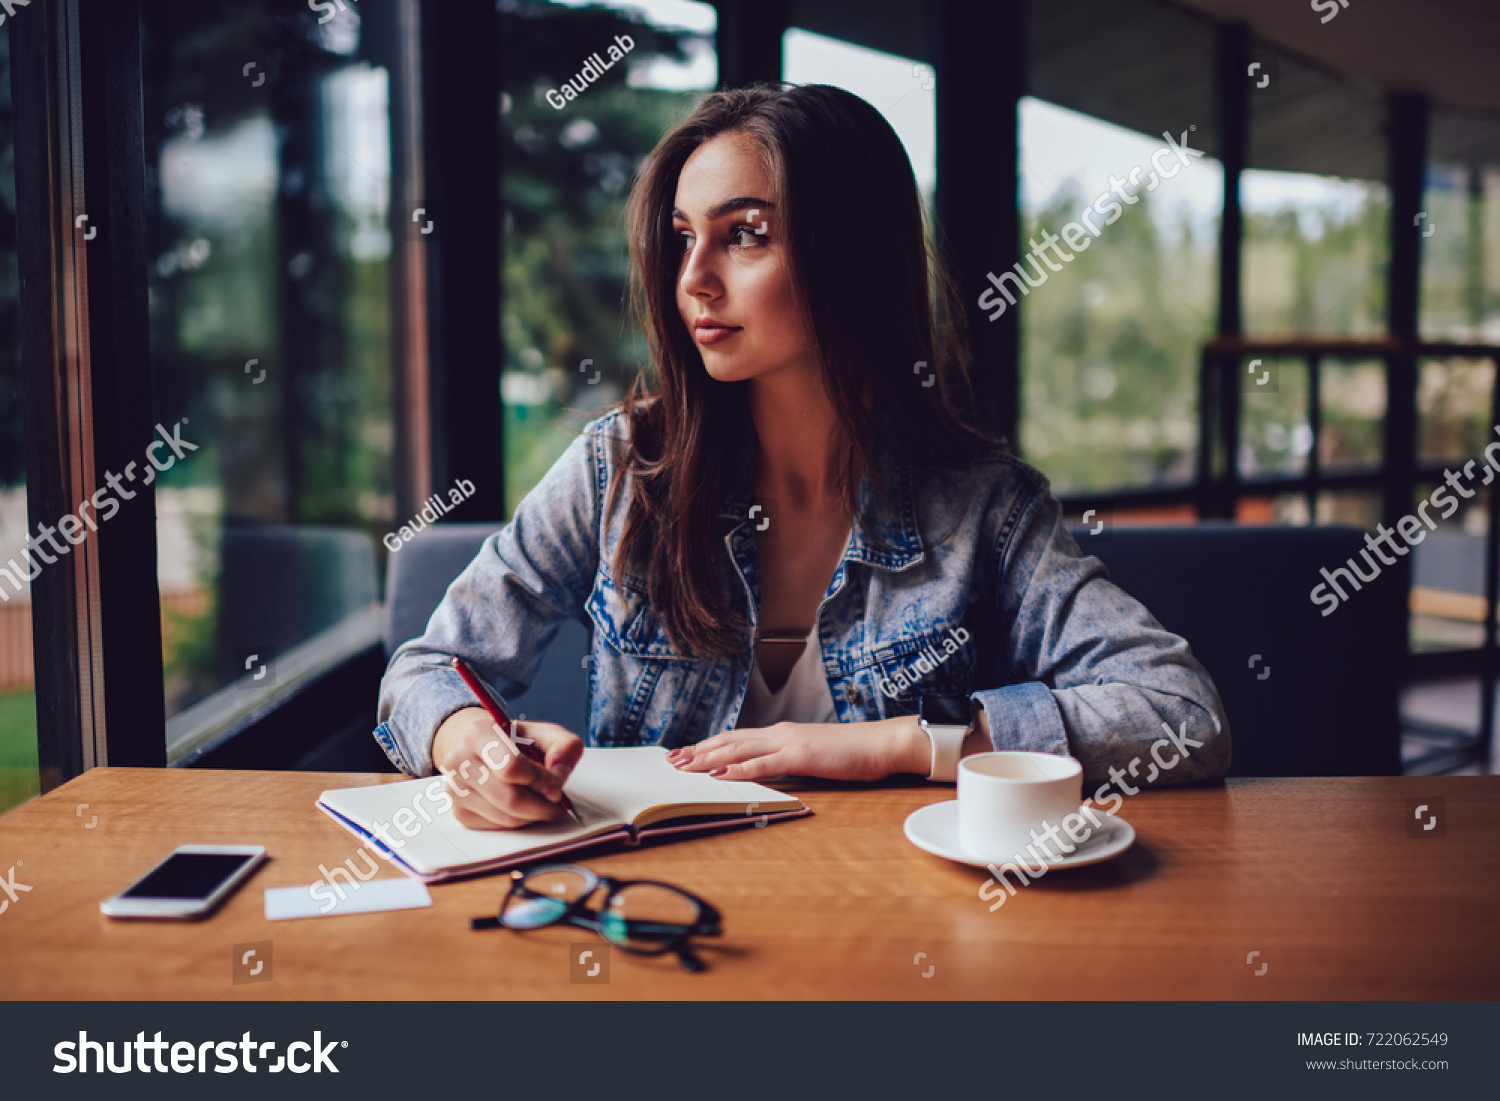 017 Essay Example Looking Out The Window Stock Photo Thoughtful Skilled Author Of And Thinking On Writing Interesting For Stunning My Full